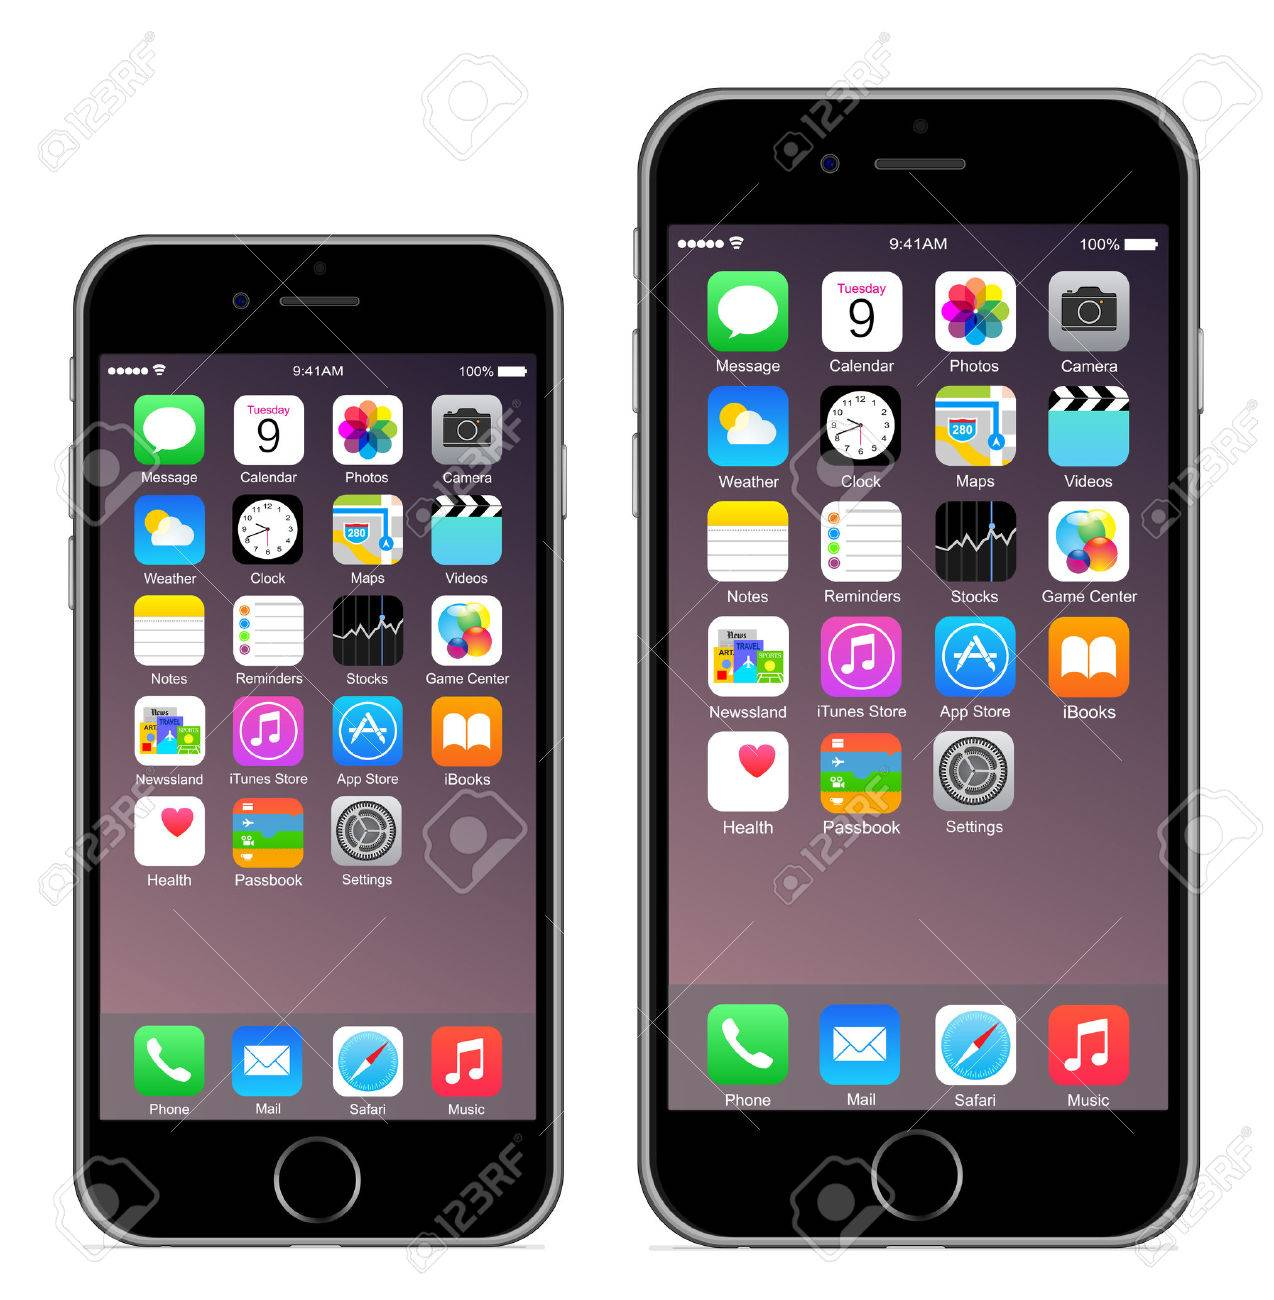 6 Iphone Iphone 6 plus Banque d'images - 31566894